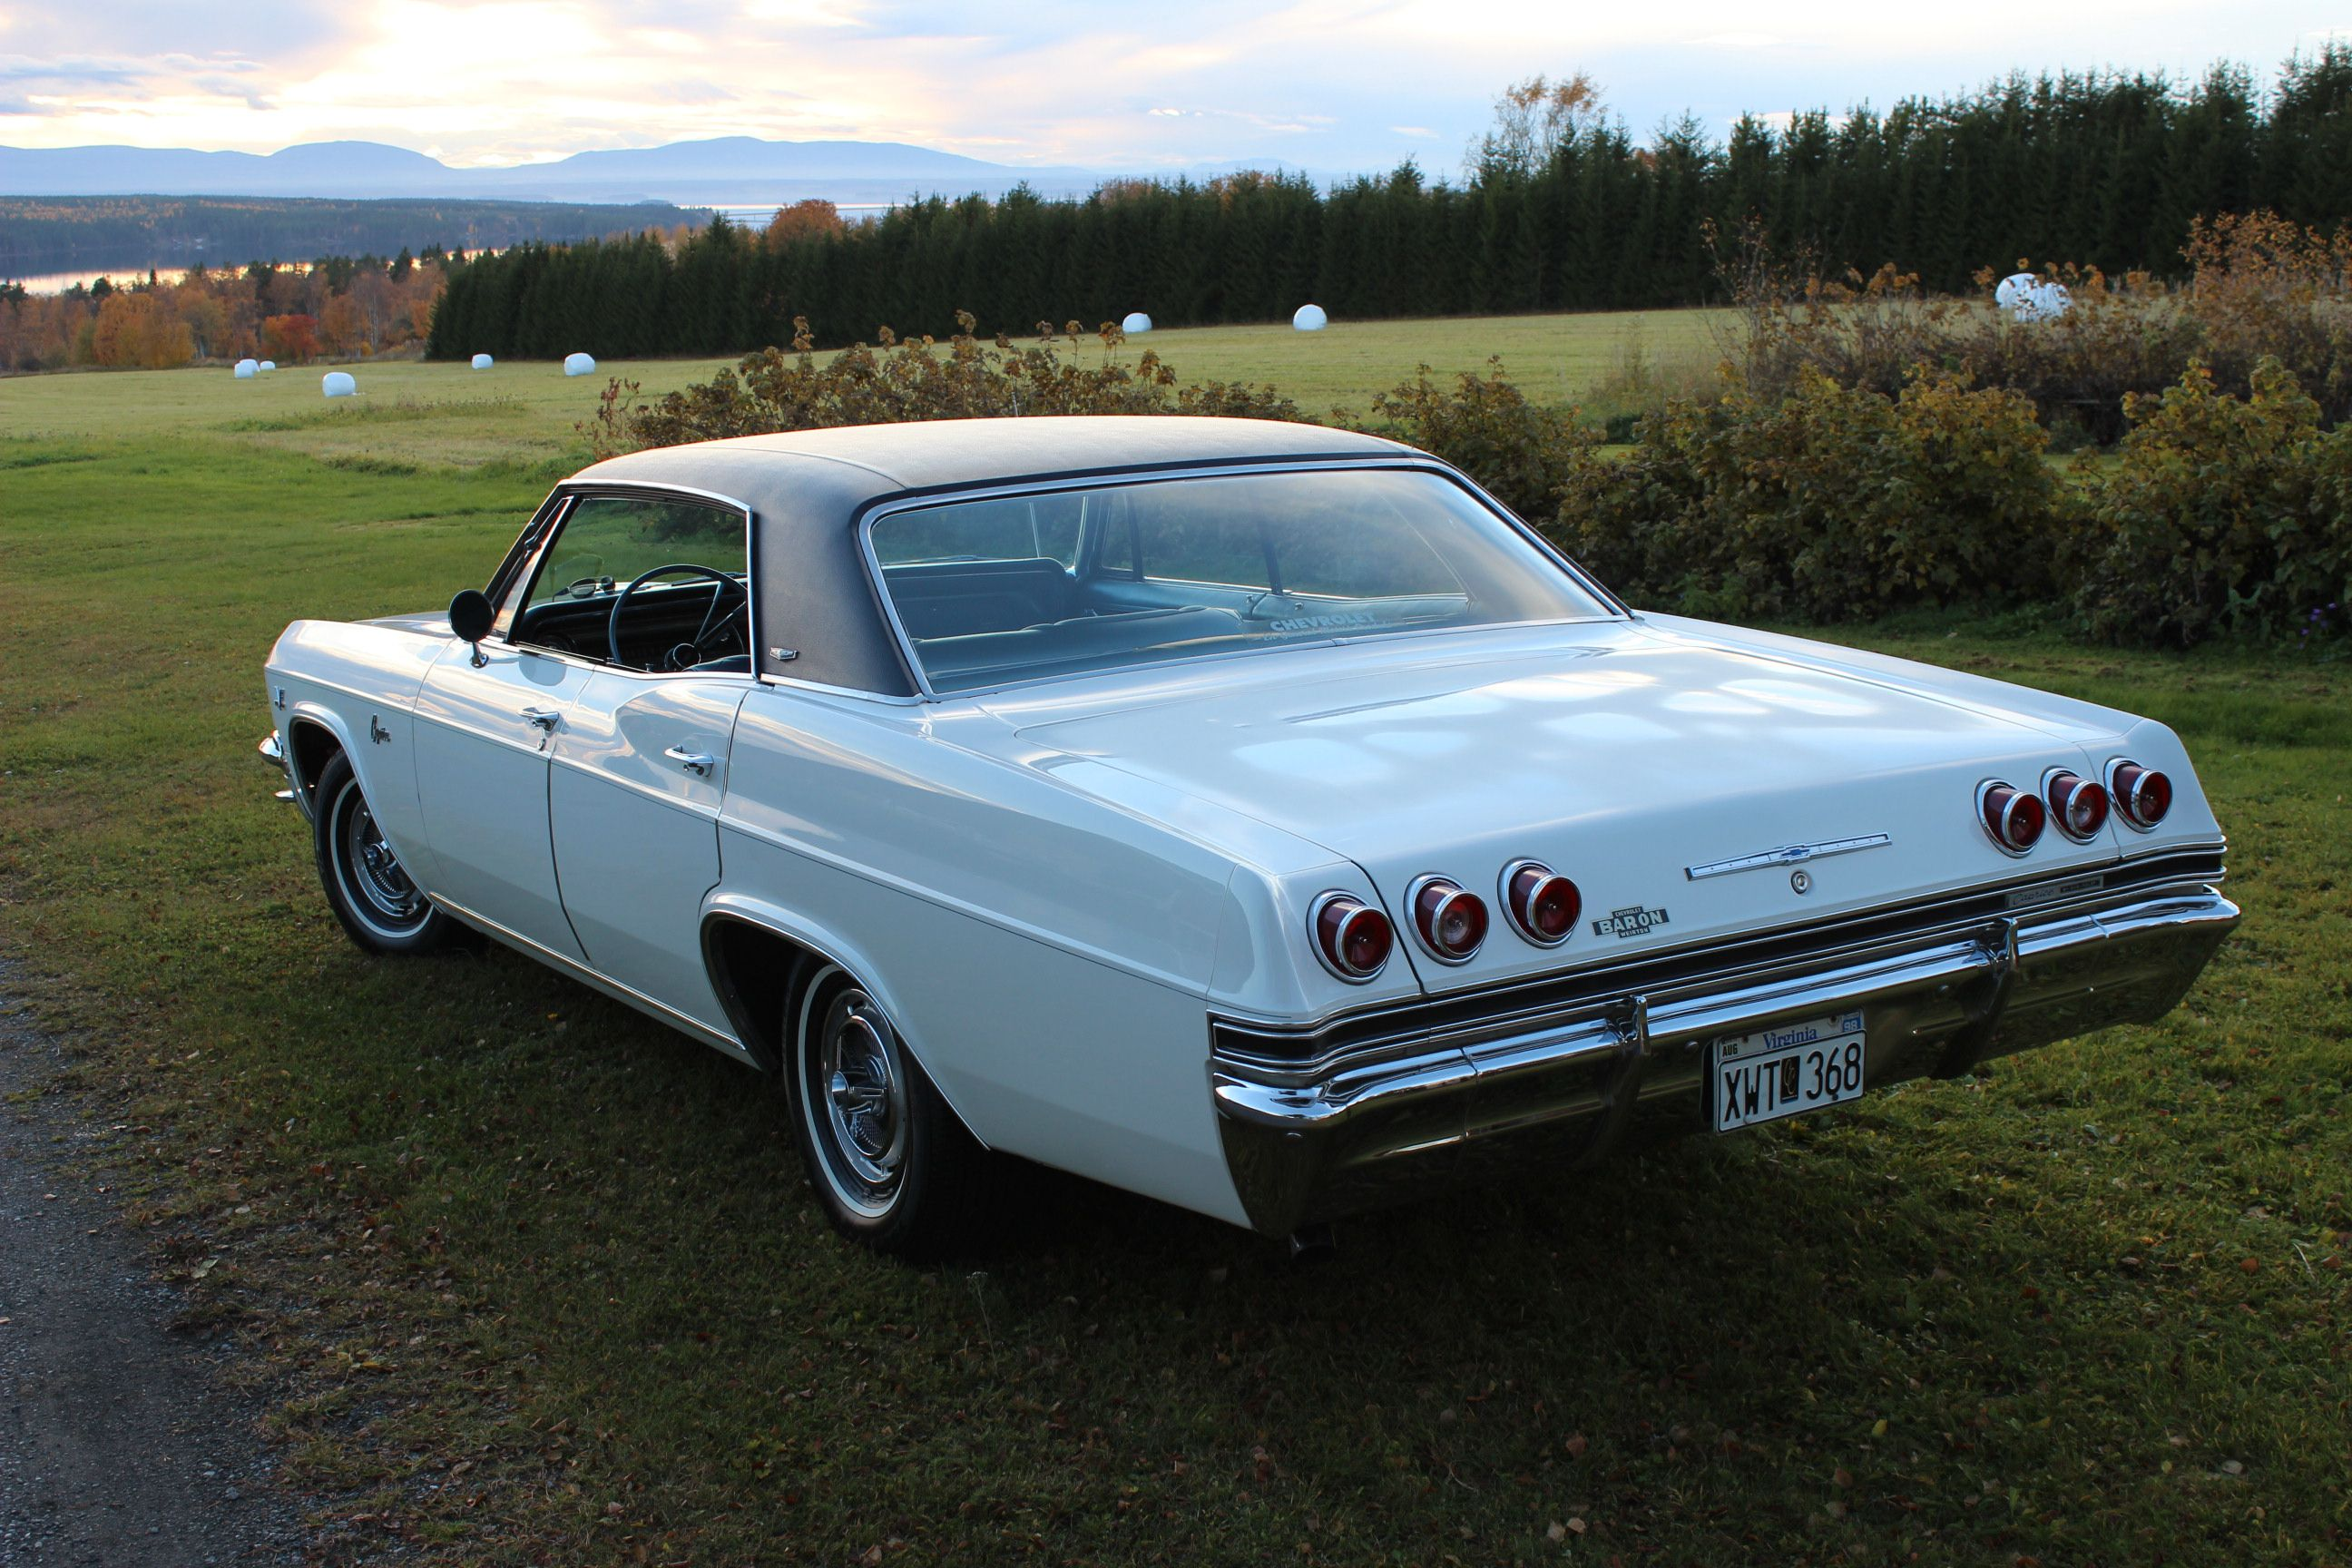 1965 Chevy Caprice American Classic Cars Chevrolet Caprice Chevrolet